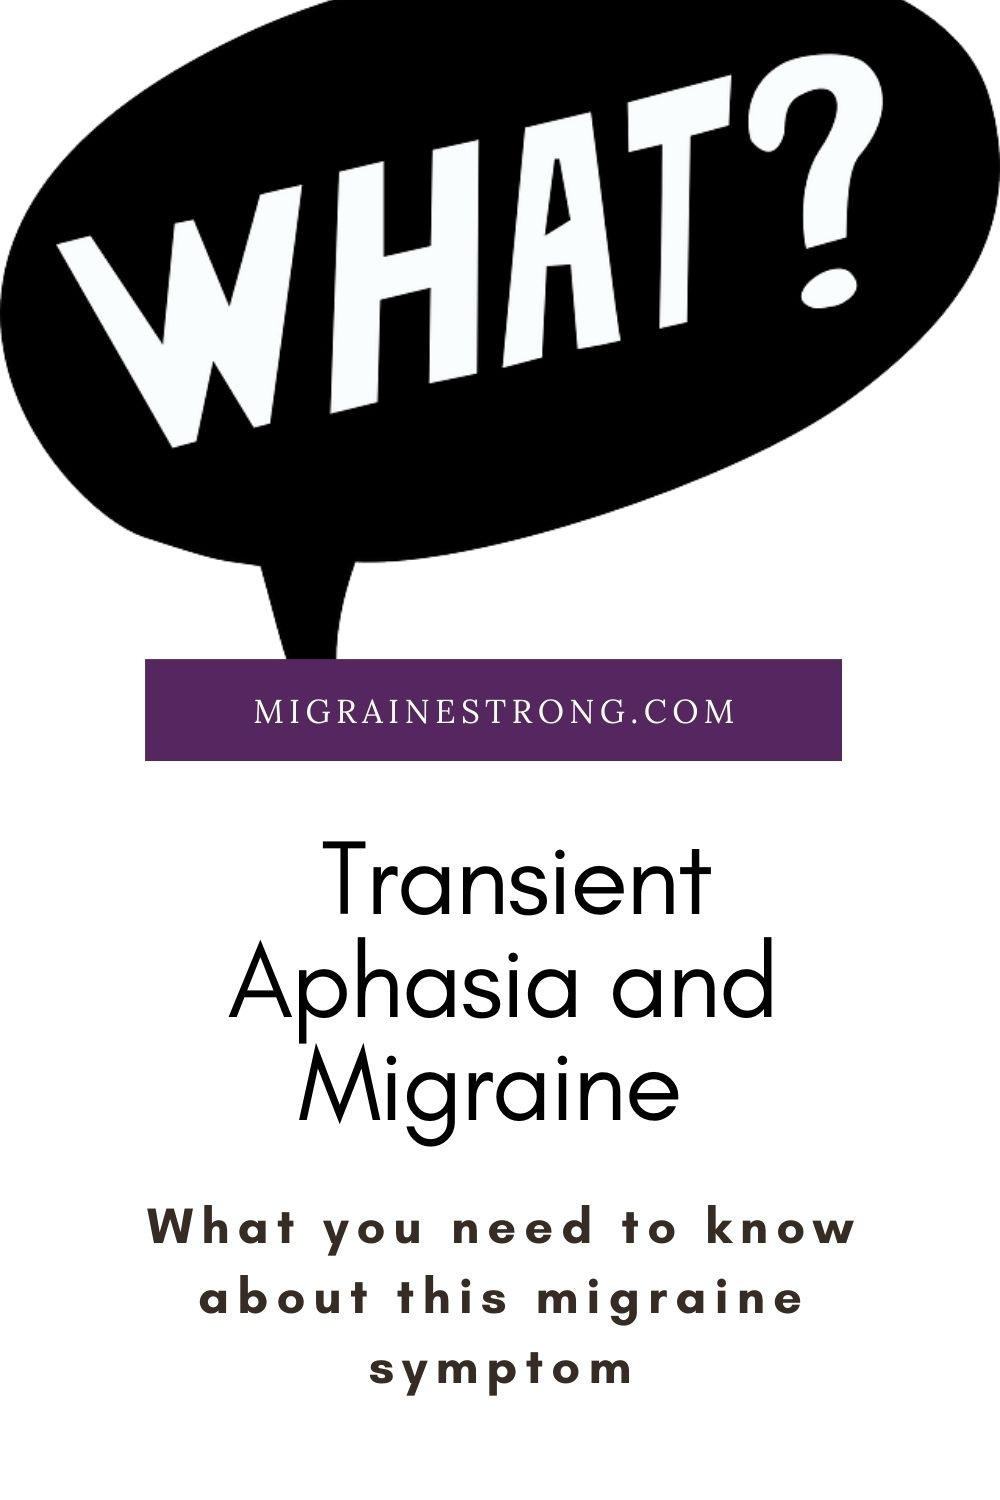 Transient Aphasia and Migraine: What You Need to Know